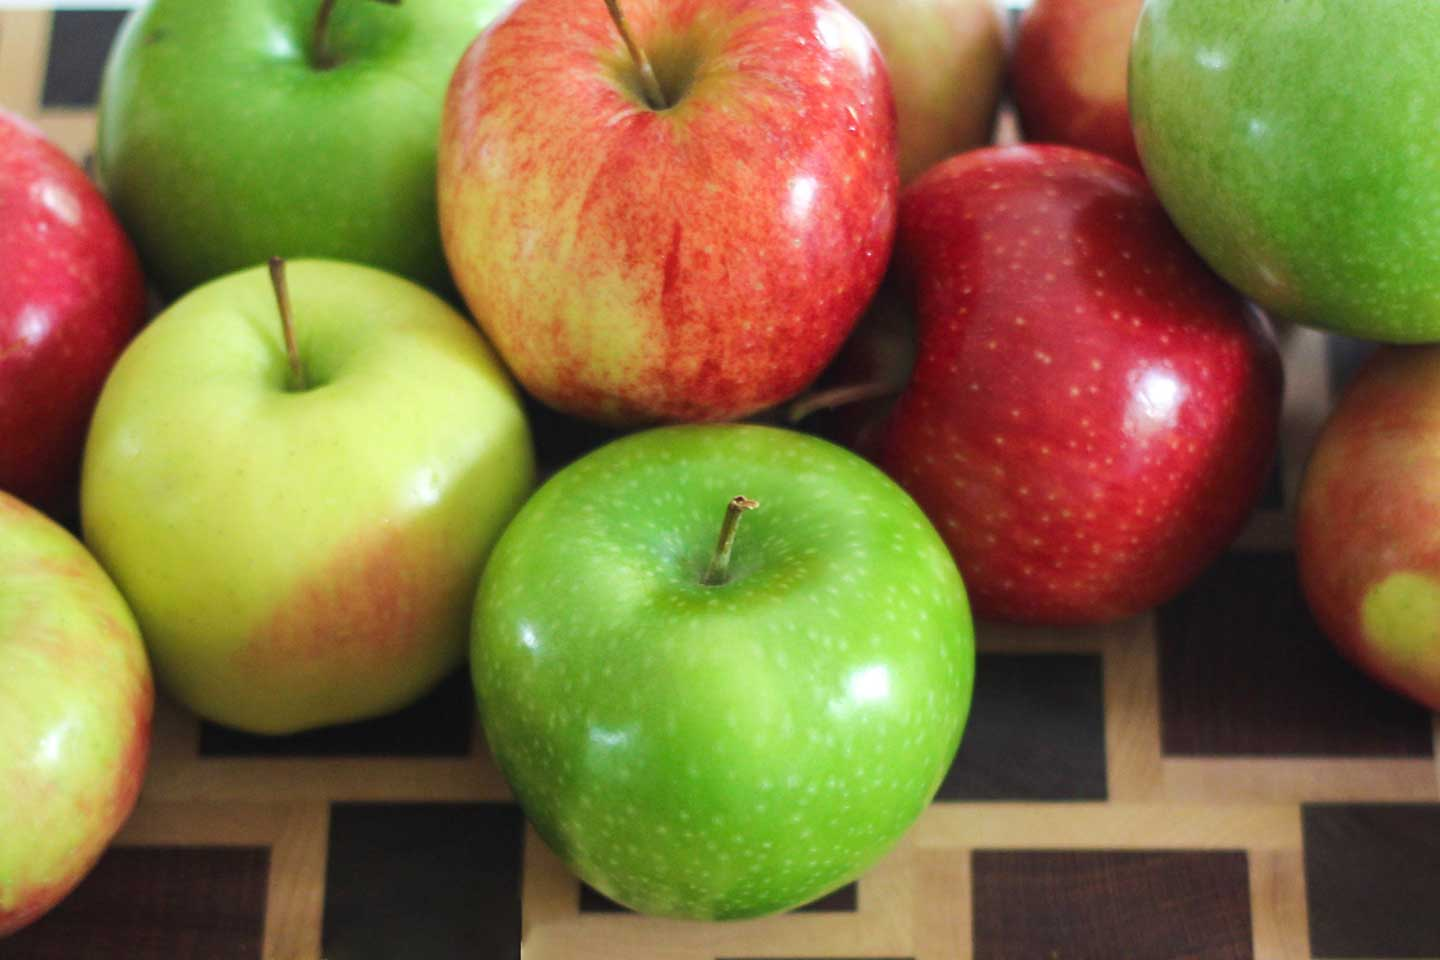 different varieties of apples in different colors